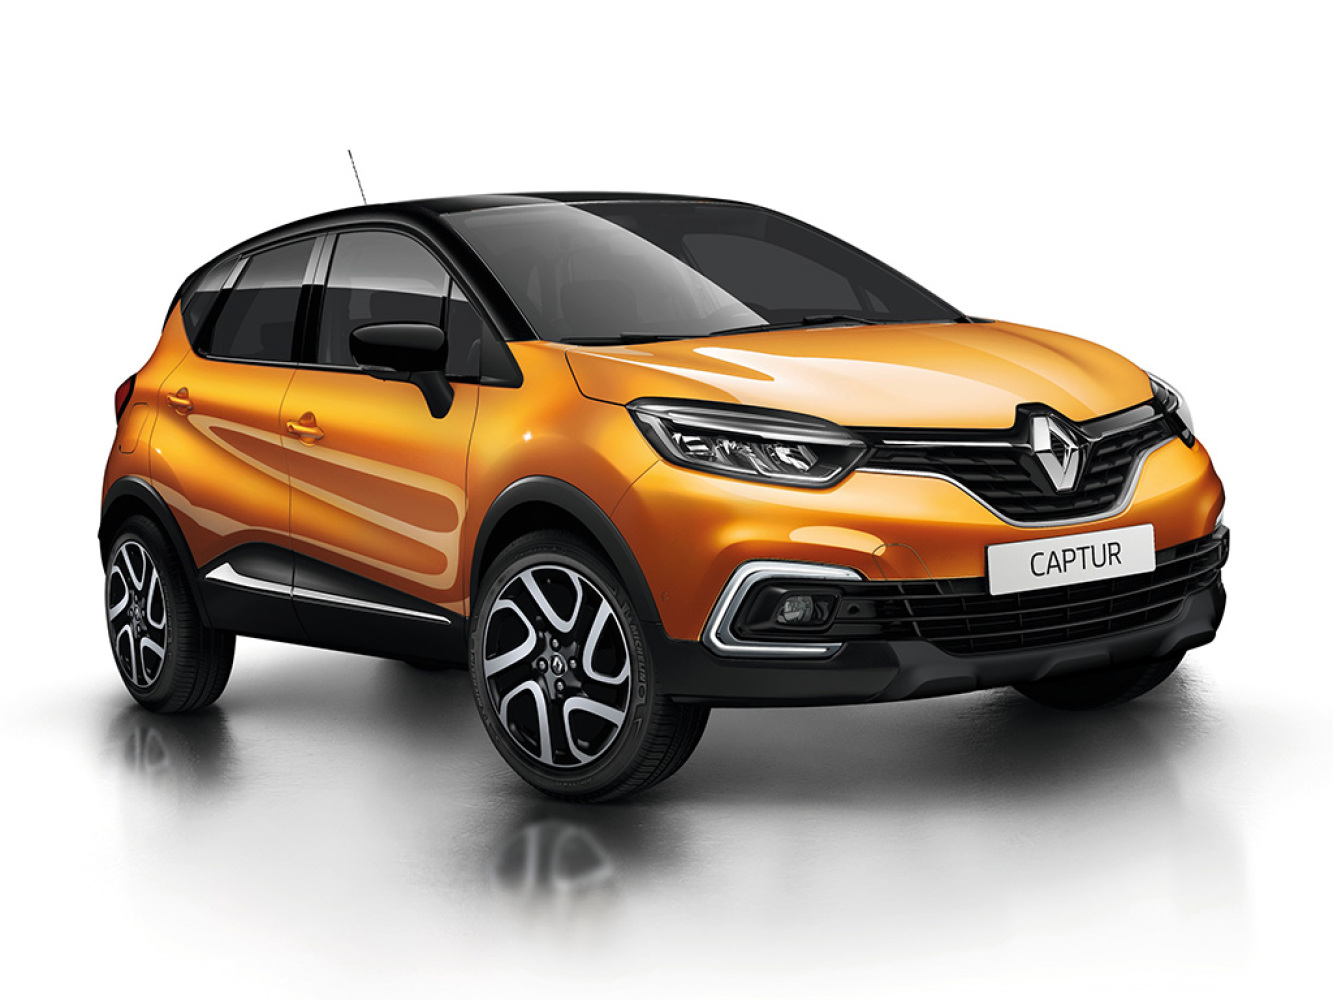 new renault captur 0 9 tce 90 iconic 5dr petrol hatchback for sale bristol street. Black Bedroom Furniture Sets. Home Design Ideas